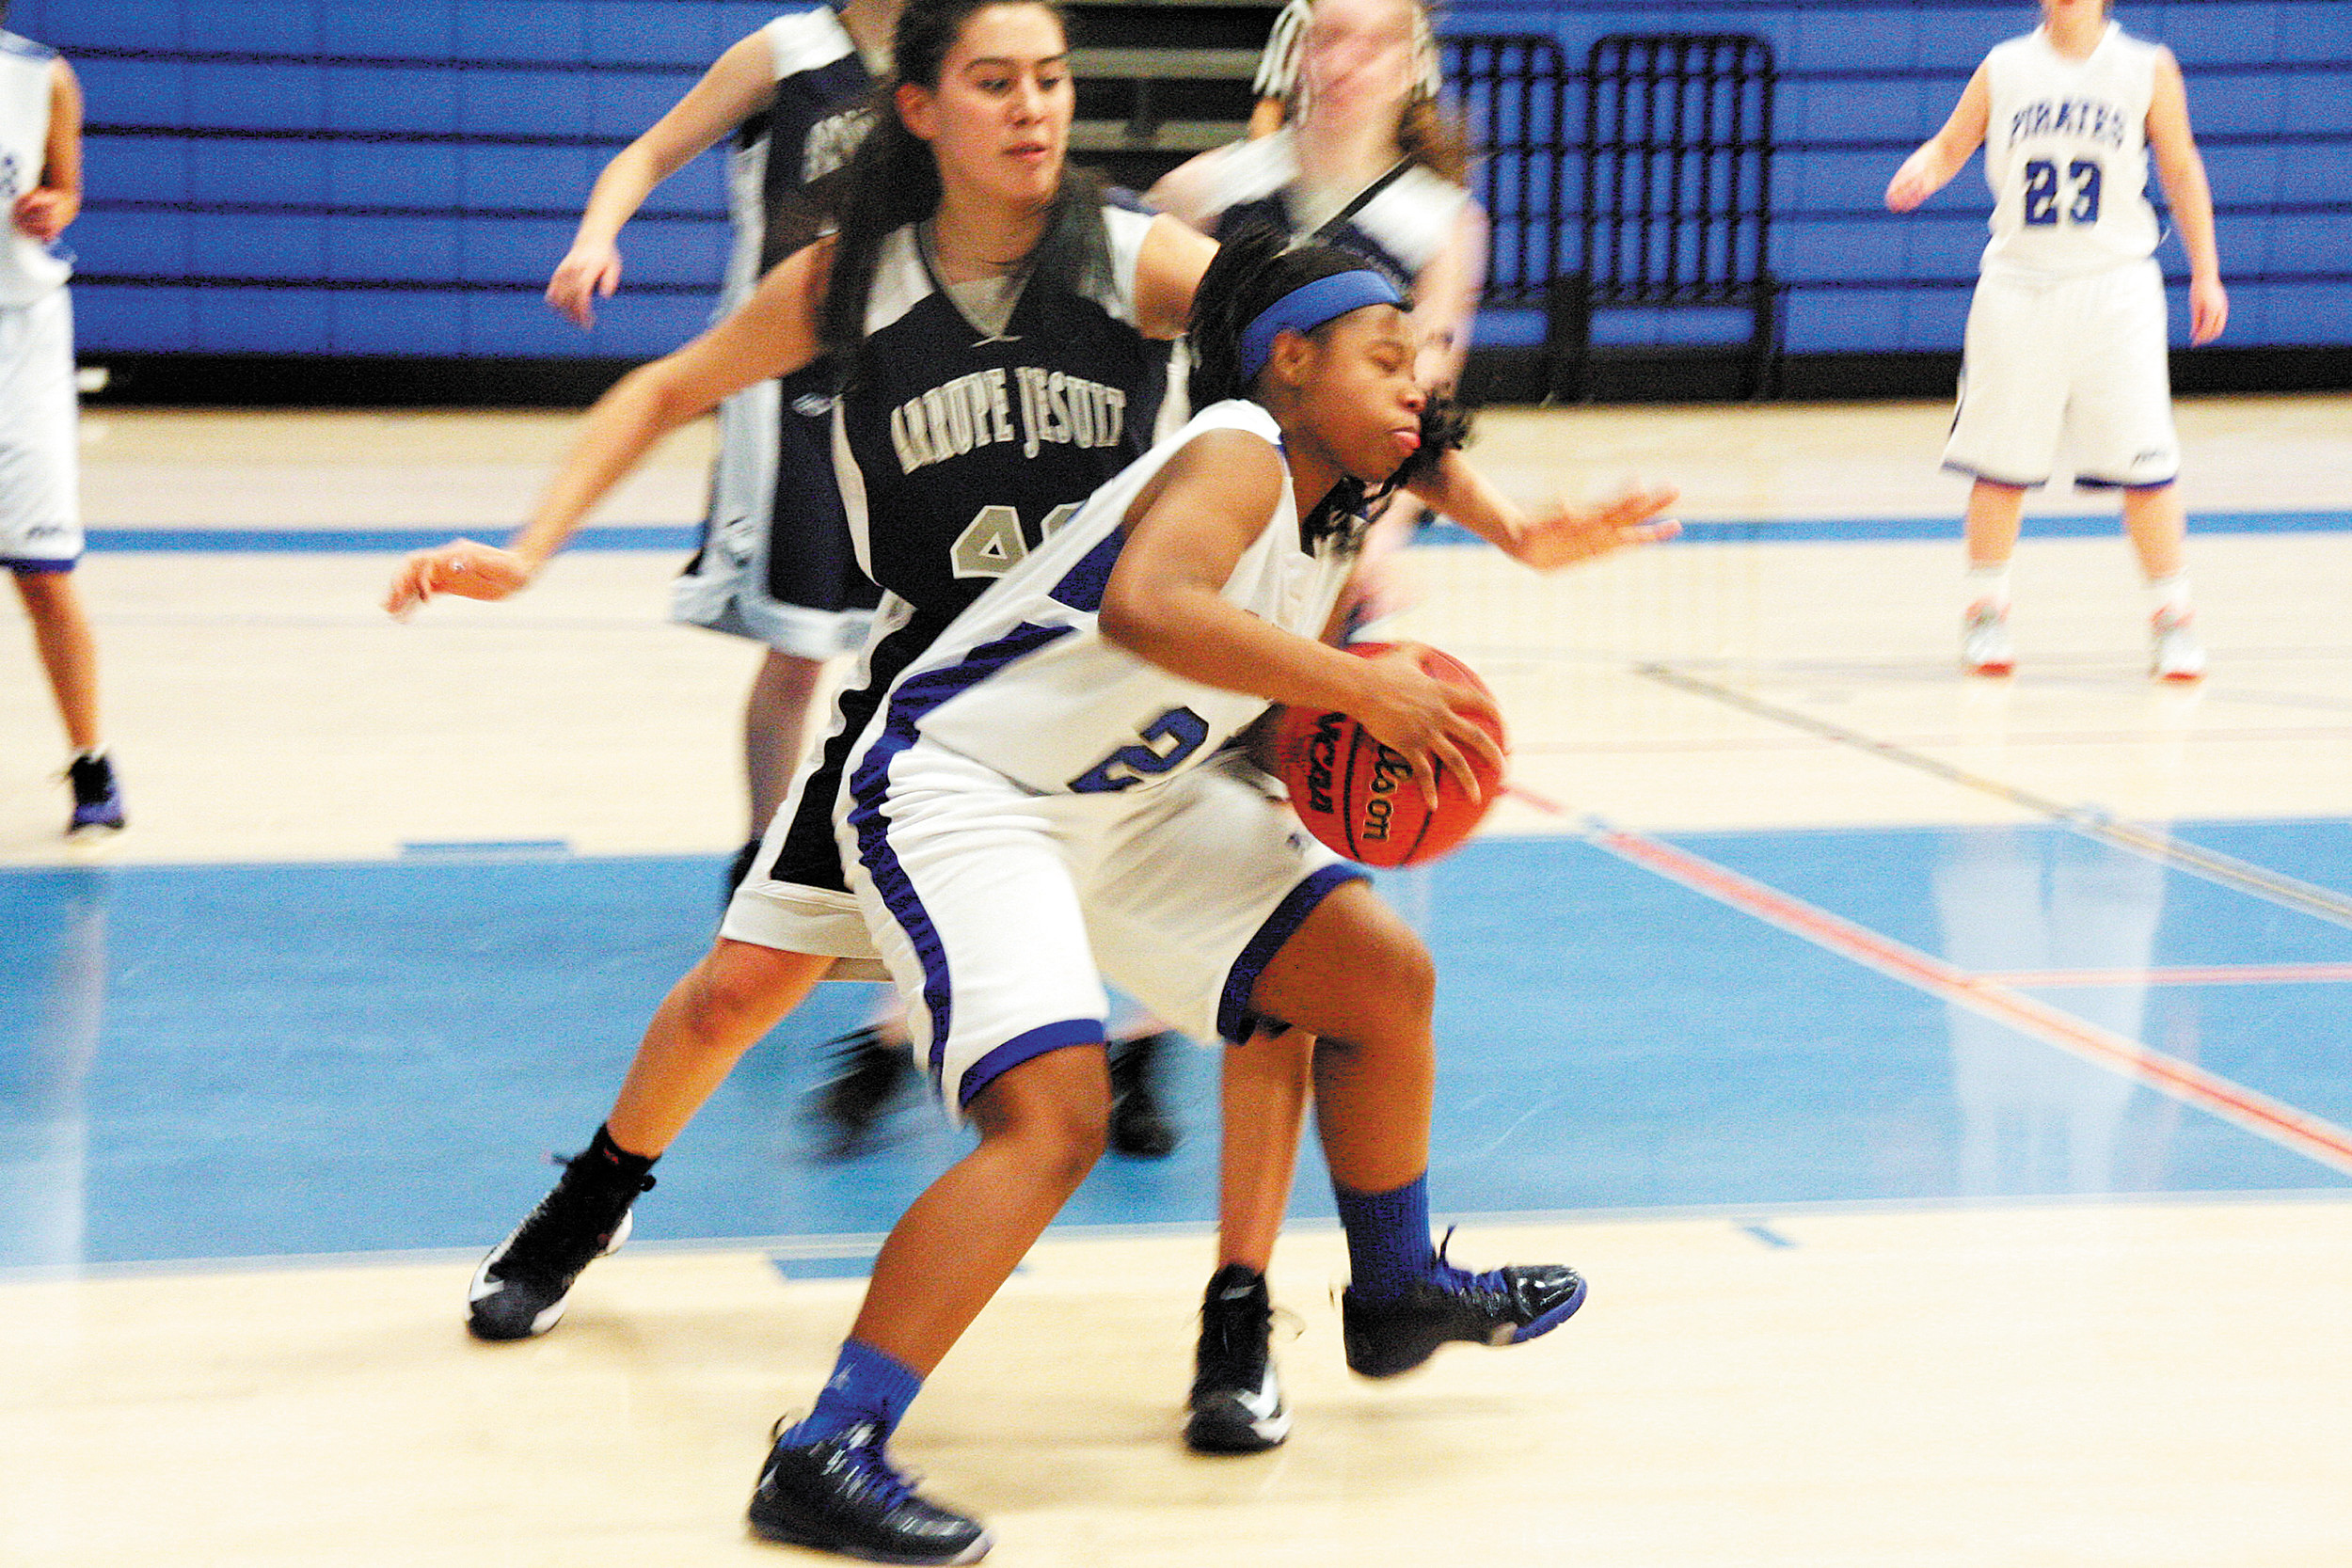 Alameda sophomore Preshus Nash has turned a star in 4A Jeffco and one of the league's hardest workers. But she is frustrated her team continues to struggle.